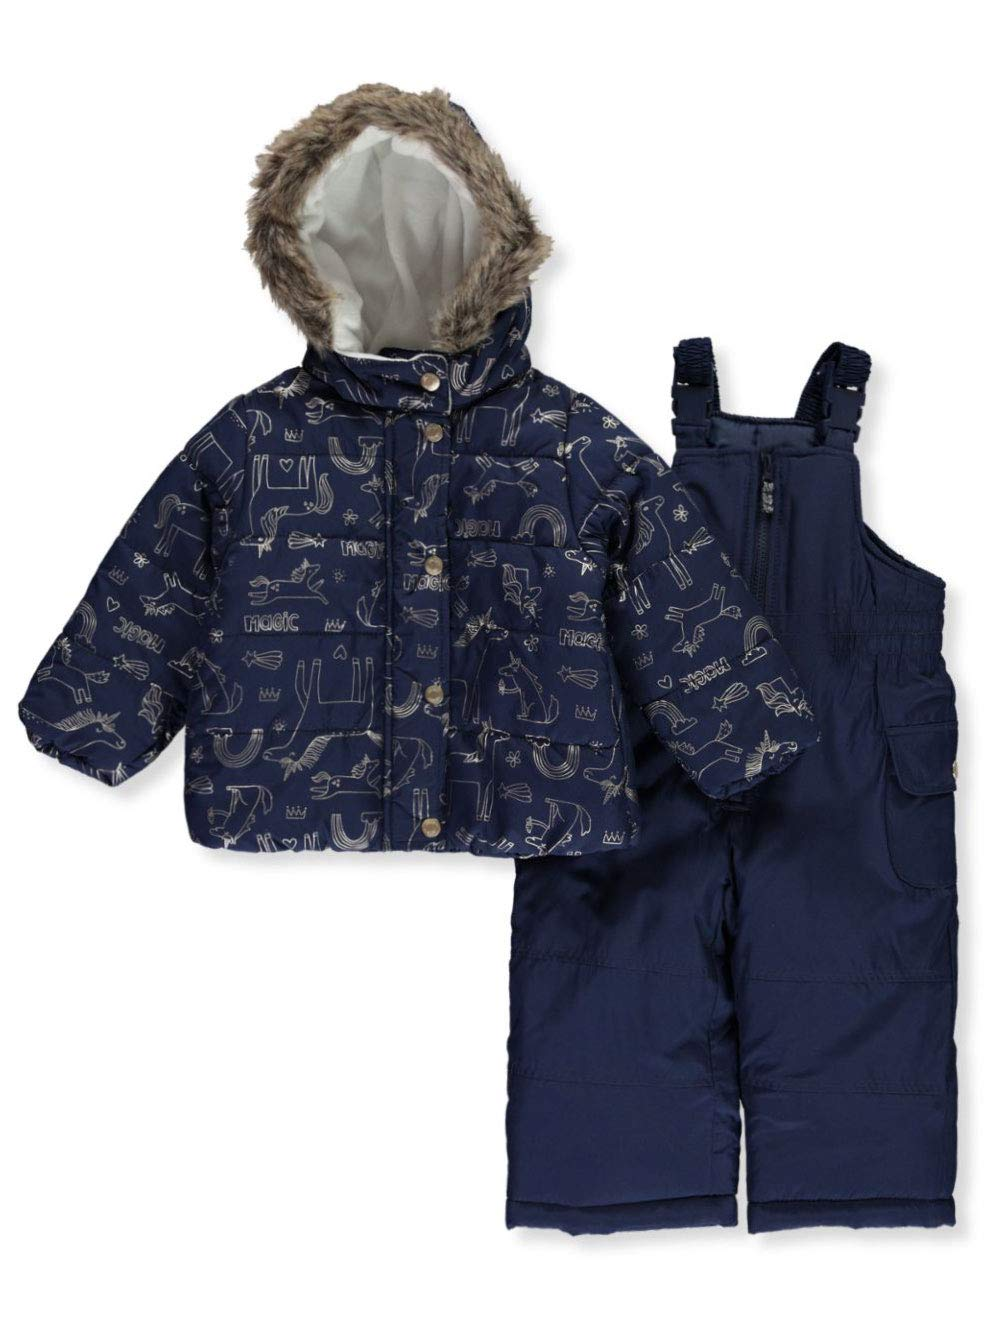 Carter's Baby Girls Heavyweight Jacket and Pants Snowsuit, Unicorns On Navy, 18 Months by Carter's